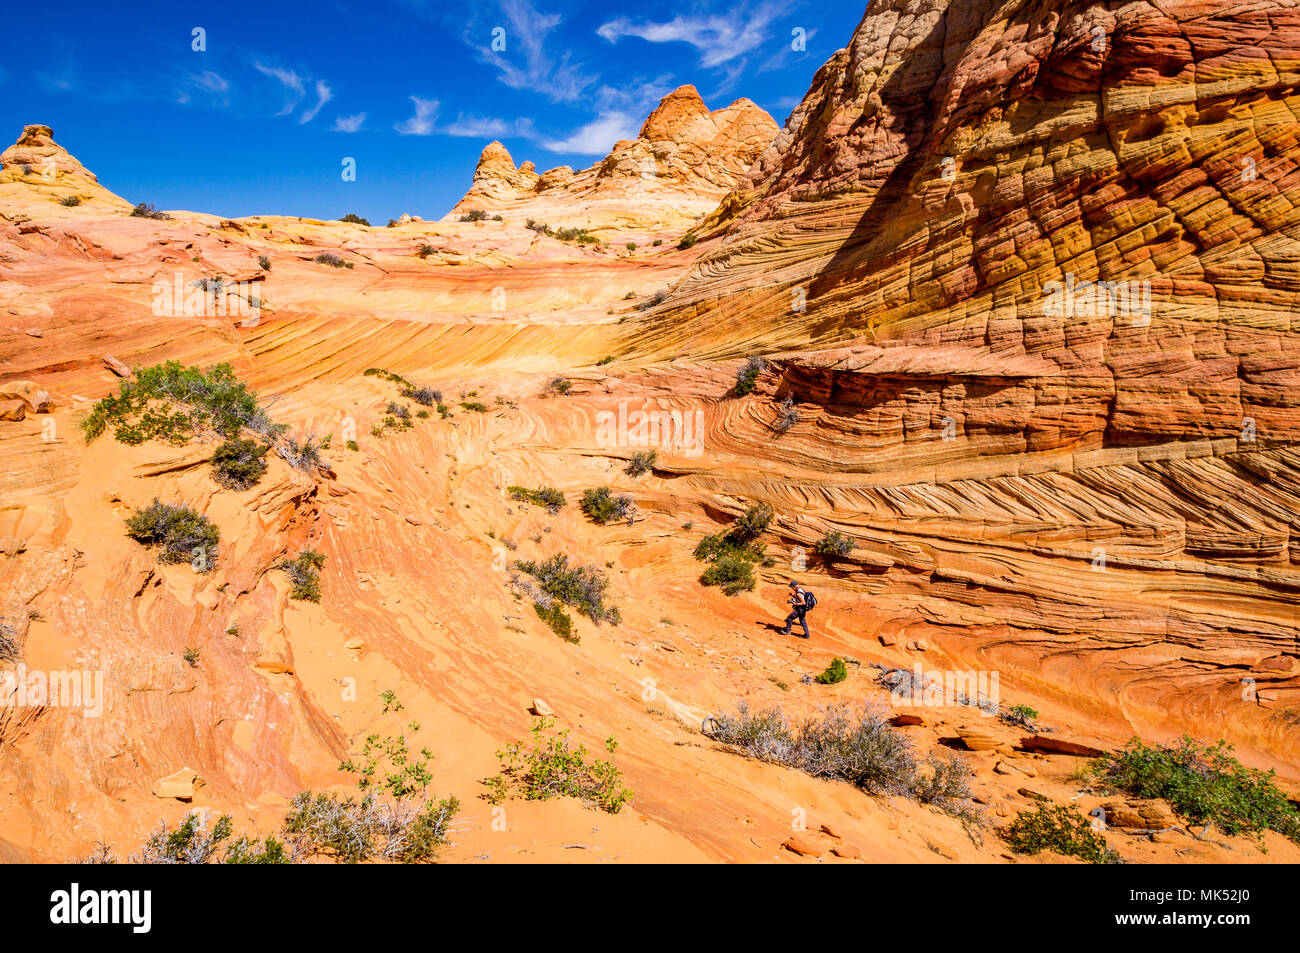 Colorful sandstone formations Cottonwood access area South Coyote Buttes Vermilion Cliffs National Monument Arizona United States of America - Stock Image